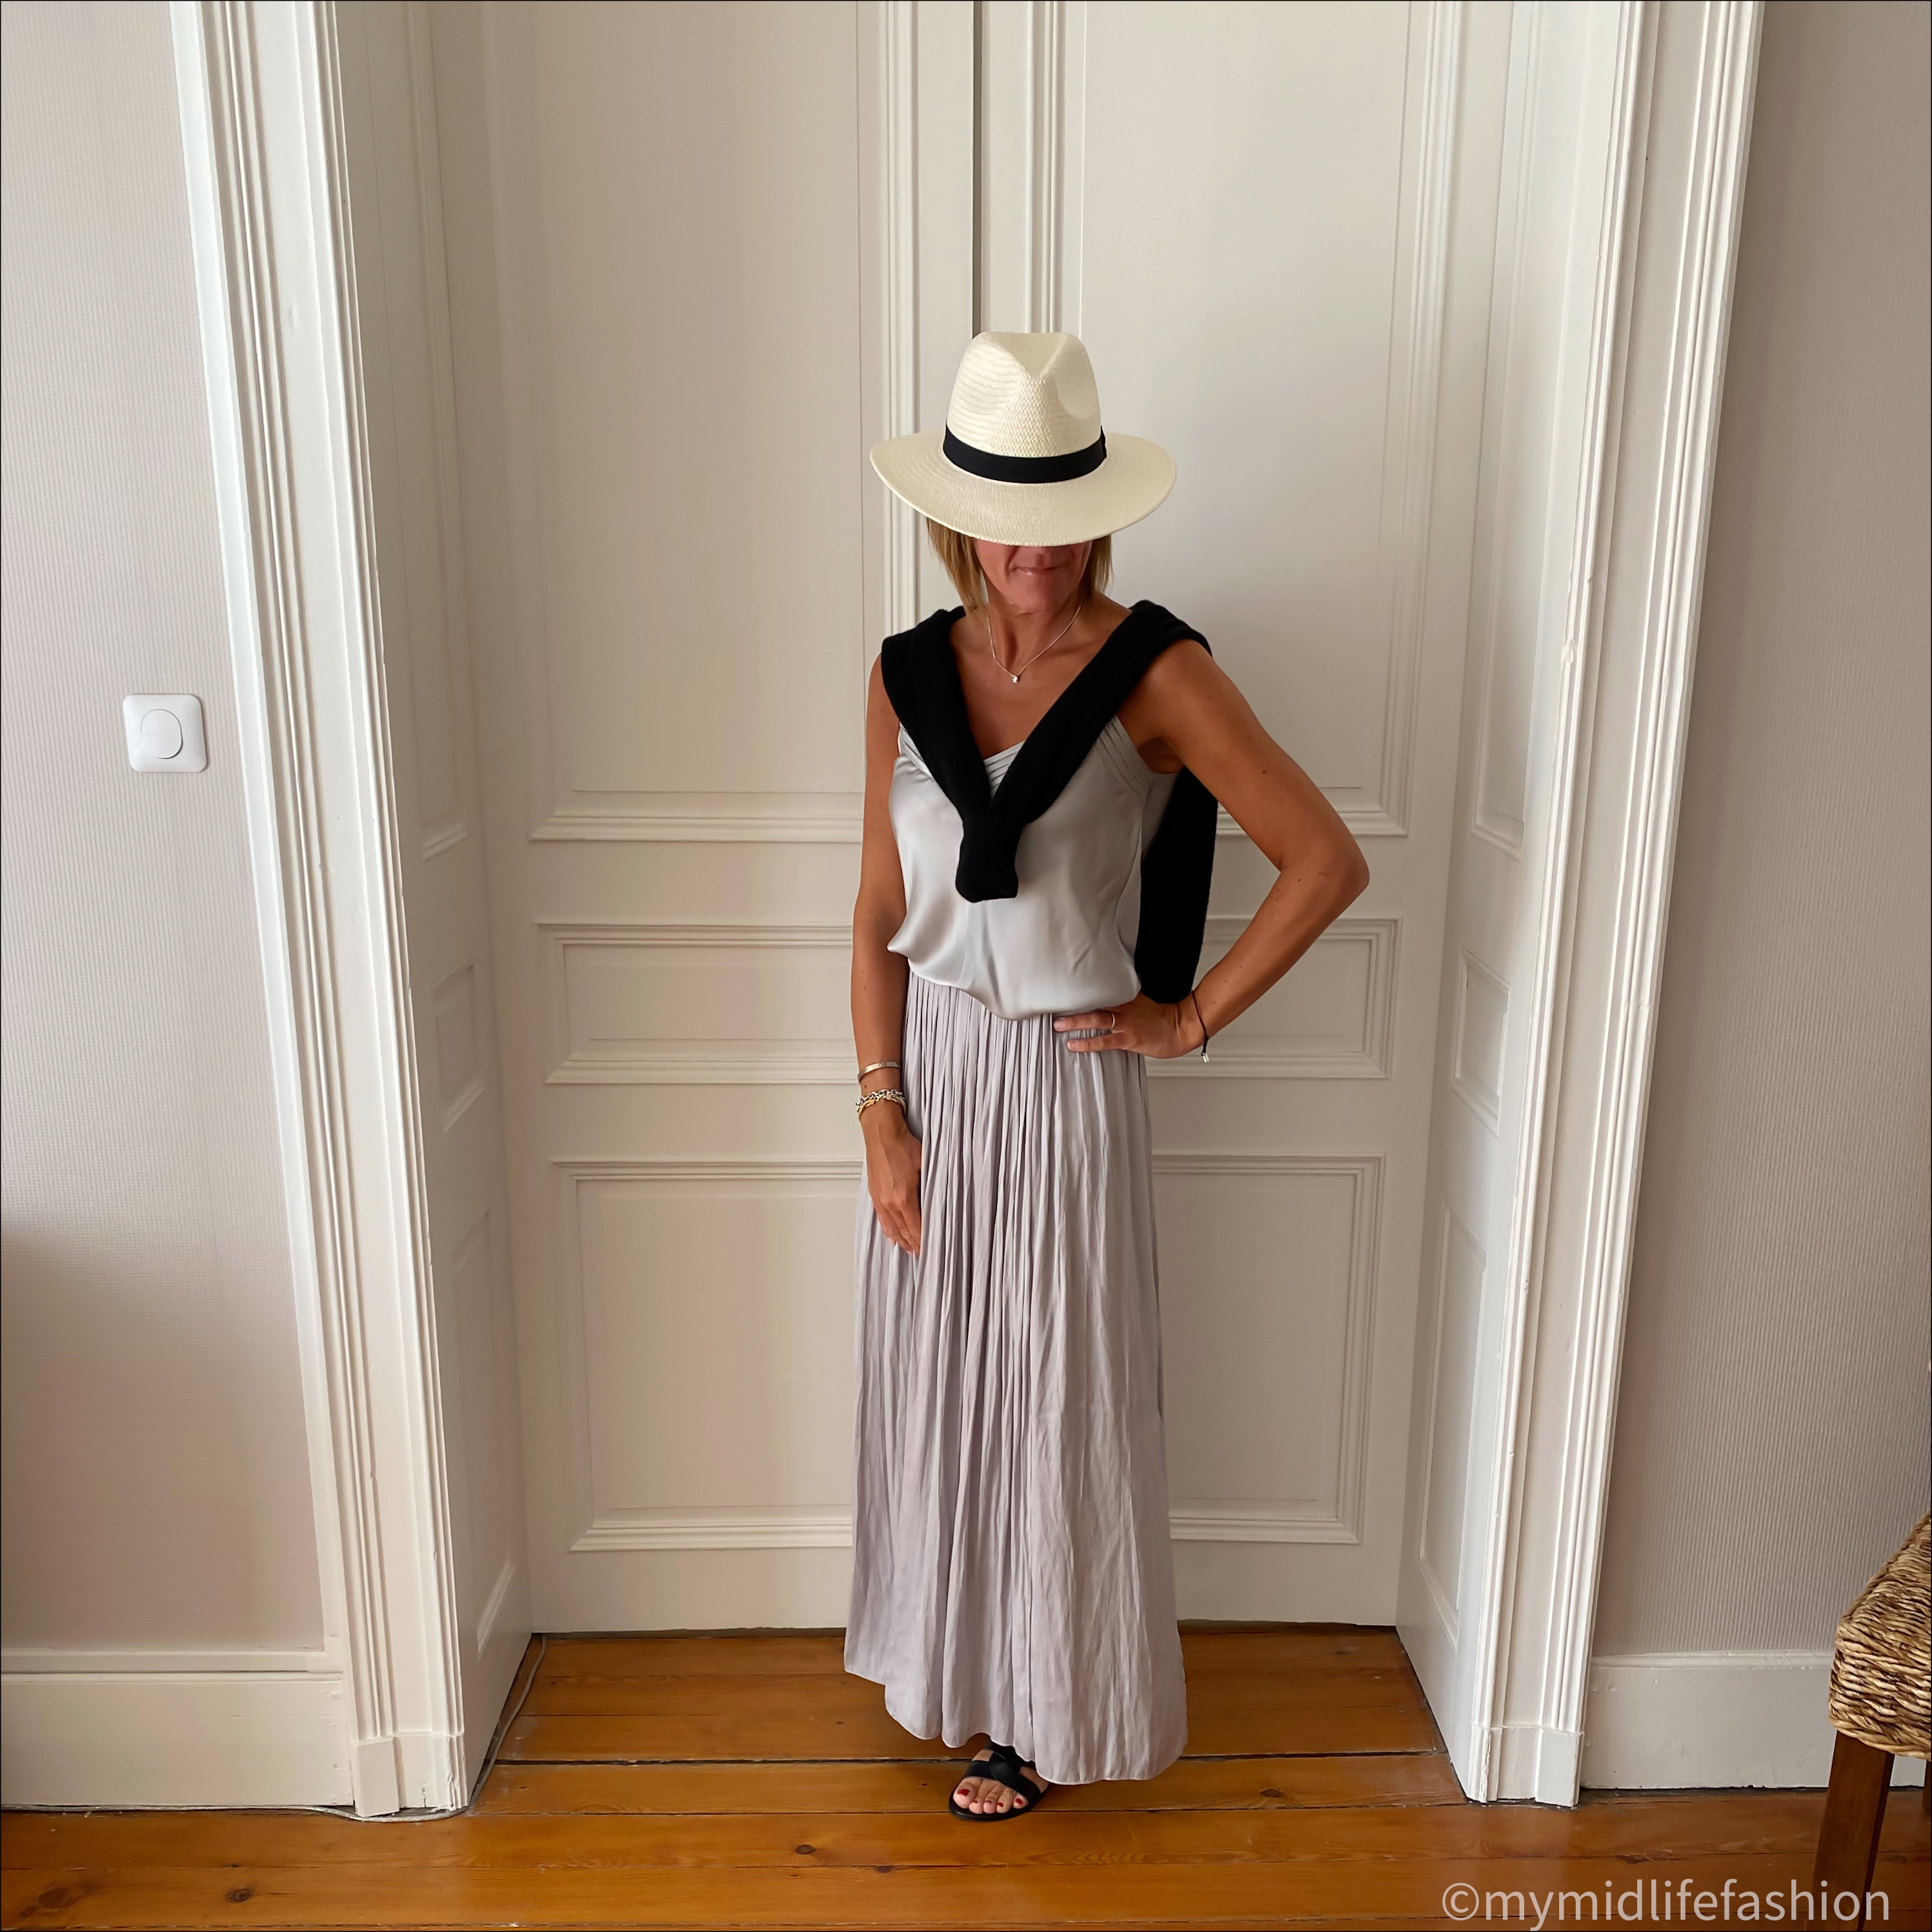 my midlife fashion, zara Panama hat, Massimo Dutti silk camisole, Massimo Dutti soft pleated maxi skirt, Boden crew neck cashmere jumper, Ancient Greek desmos leather sliders